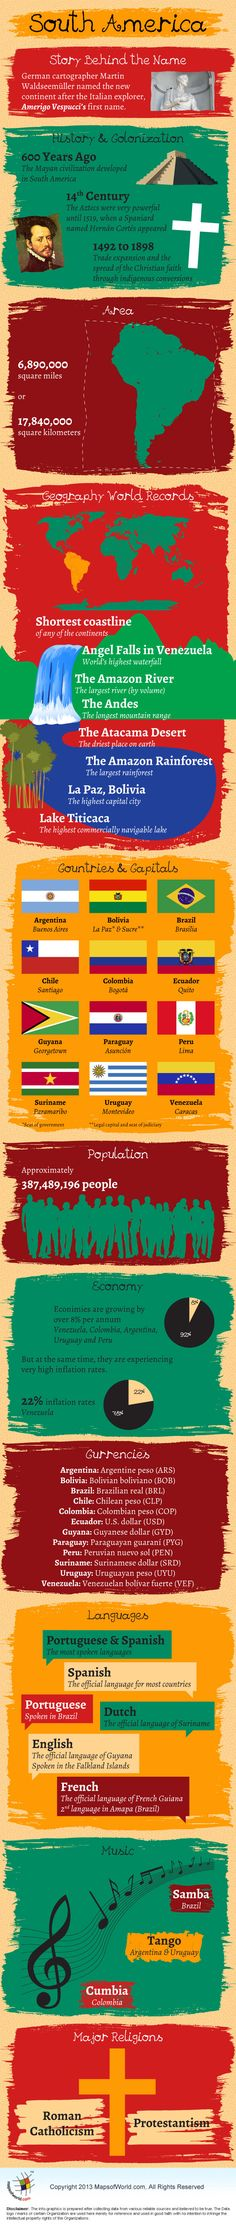 #Infographic FAST FACTS ABOUT SOUTH AMERICA #SouthAmerica